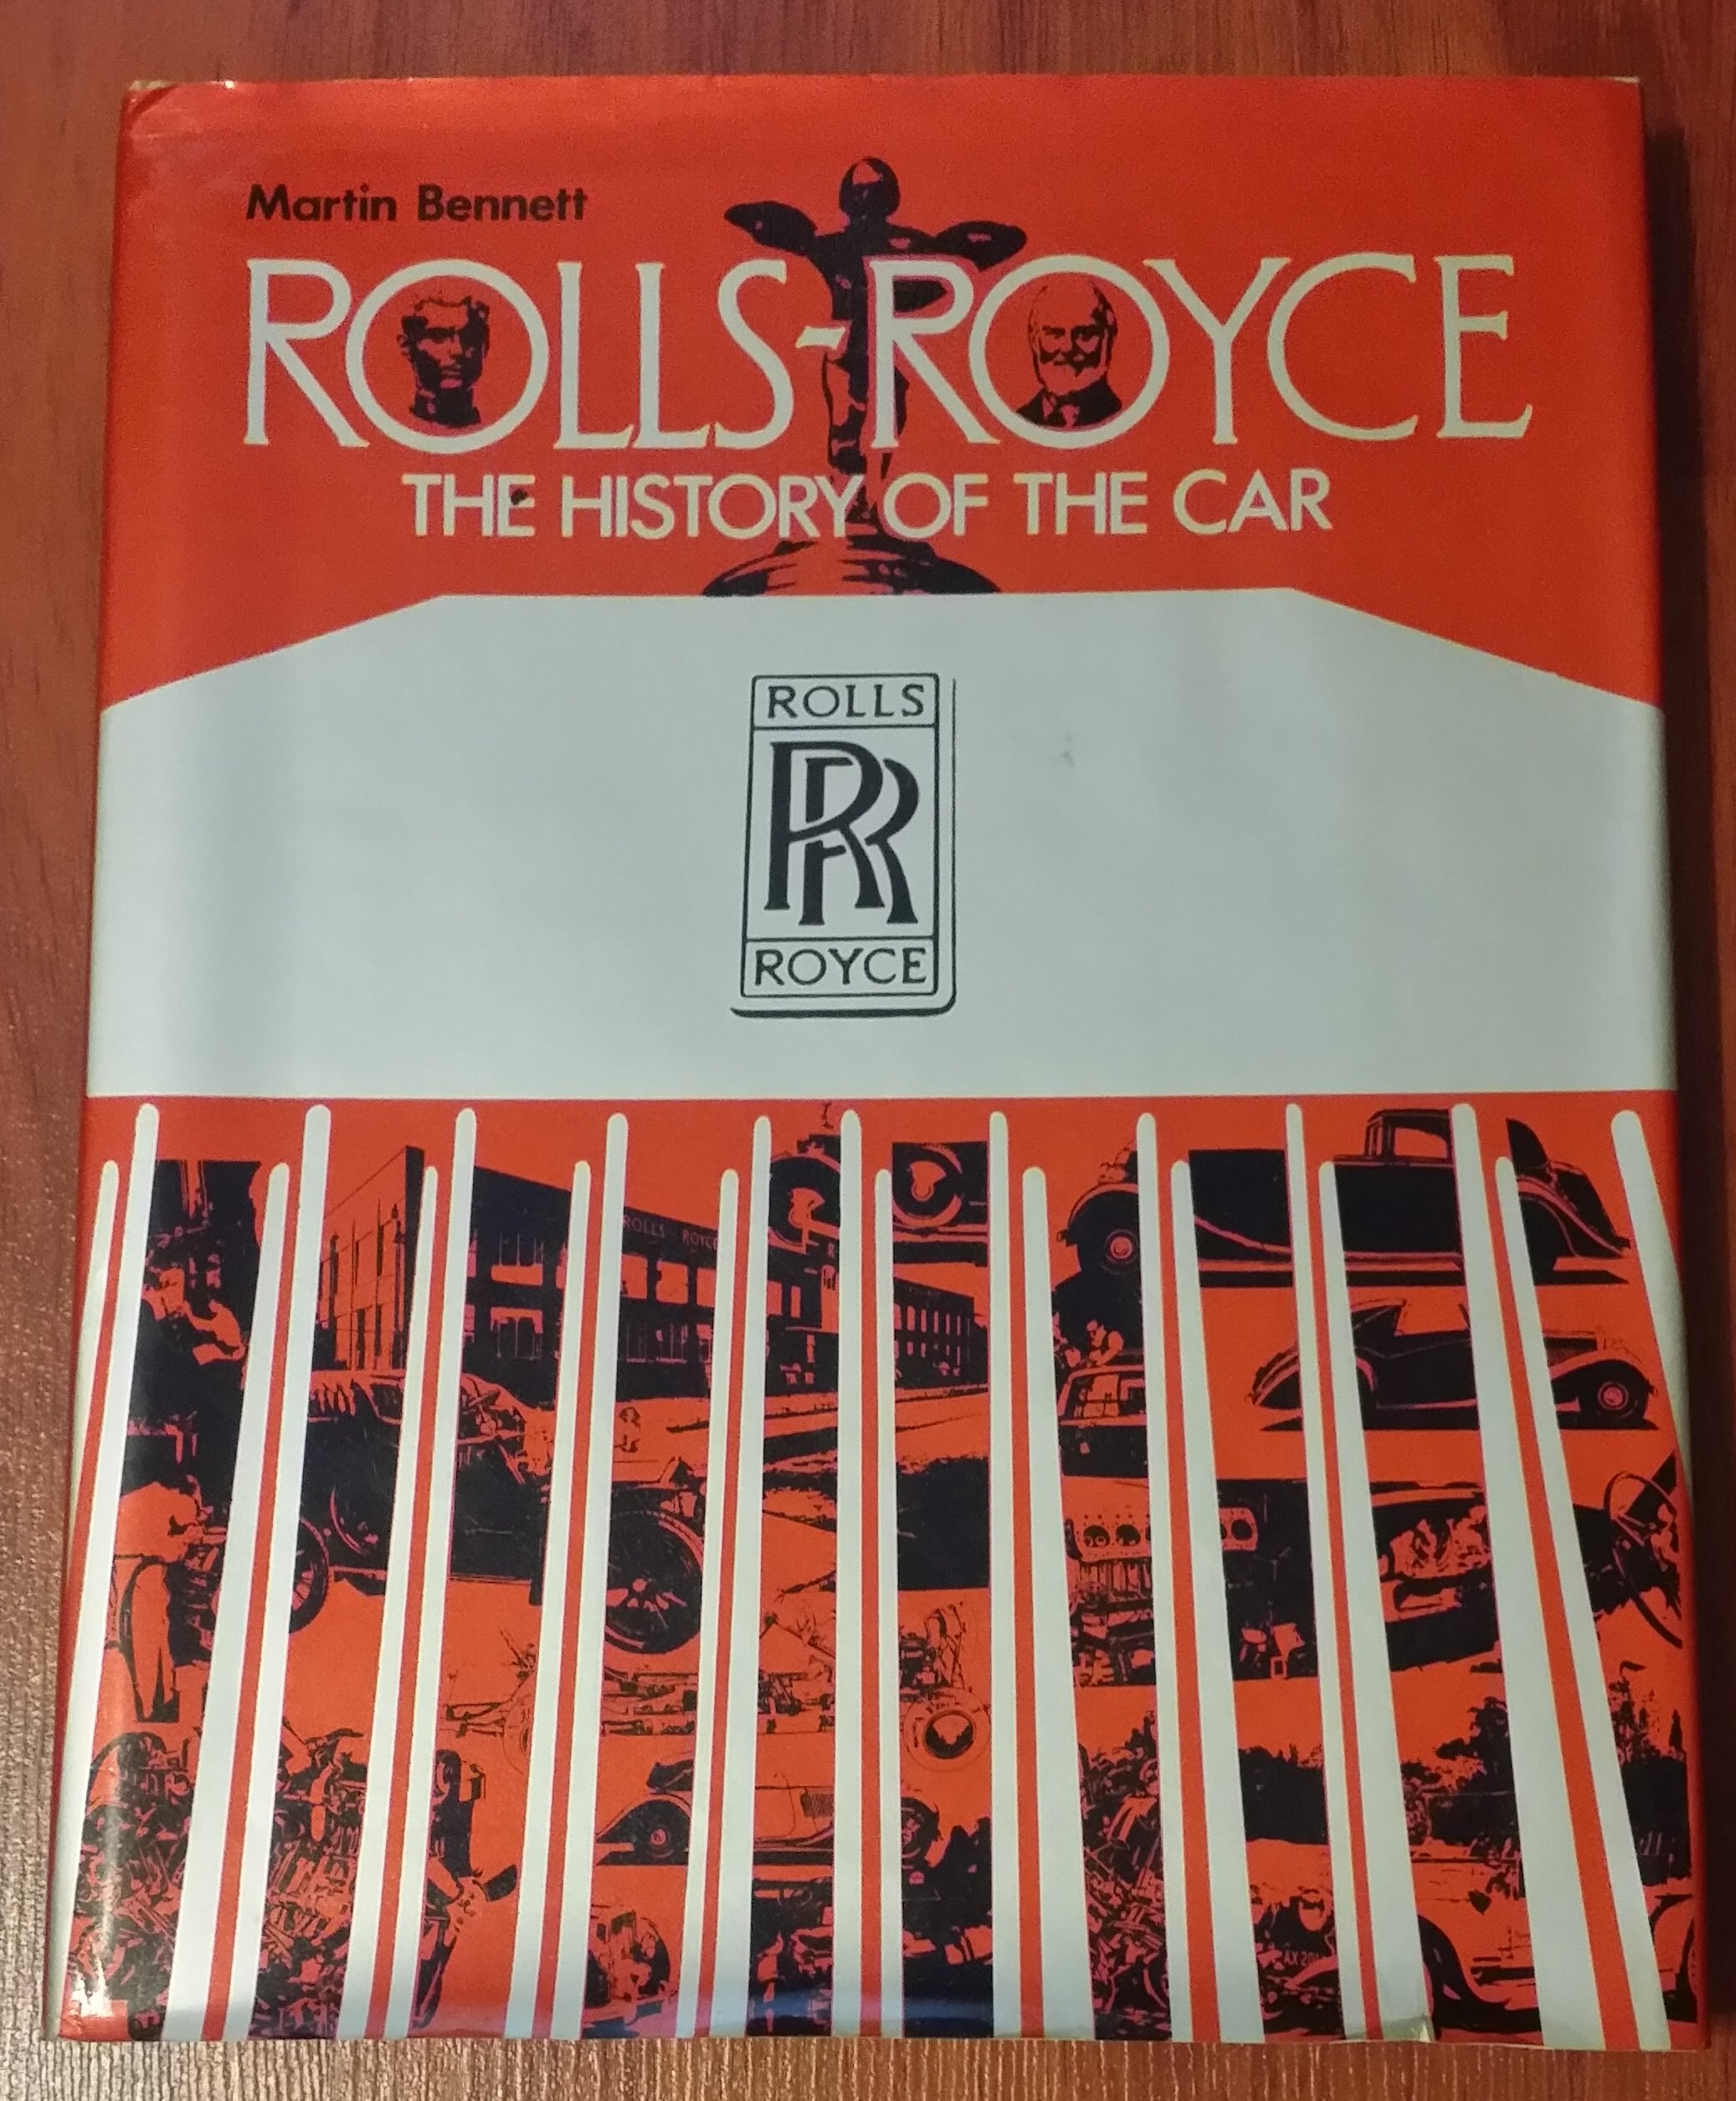 Rolls royce the history of the car martin bennett 9780668036191 rolls royce the history of the car martin bennett 9780668036191 amazon books fandeluxe Choice Image